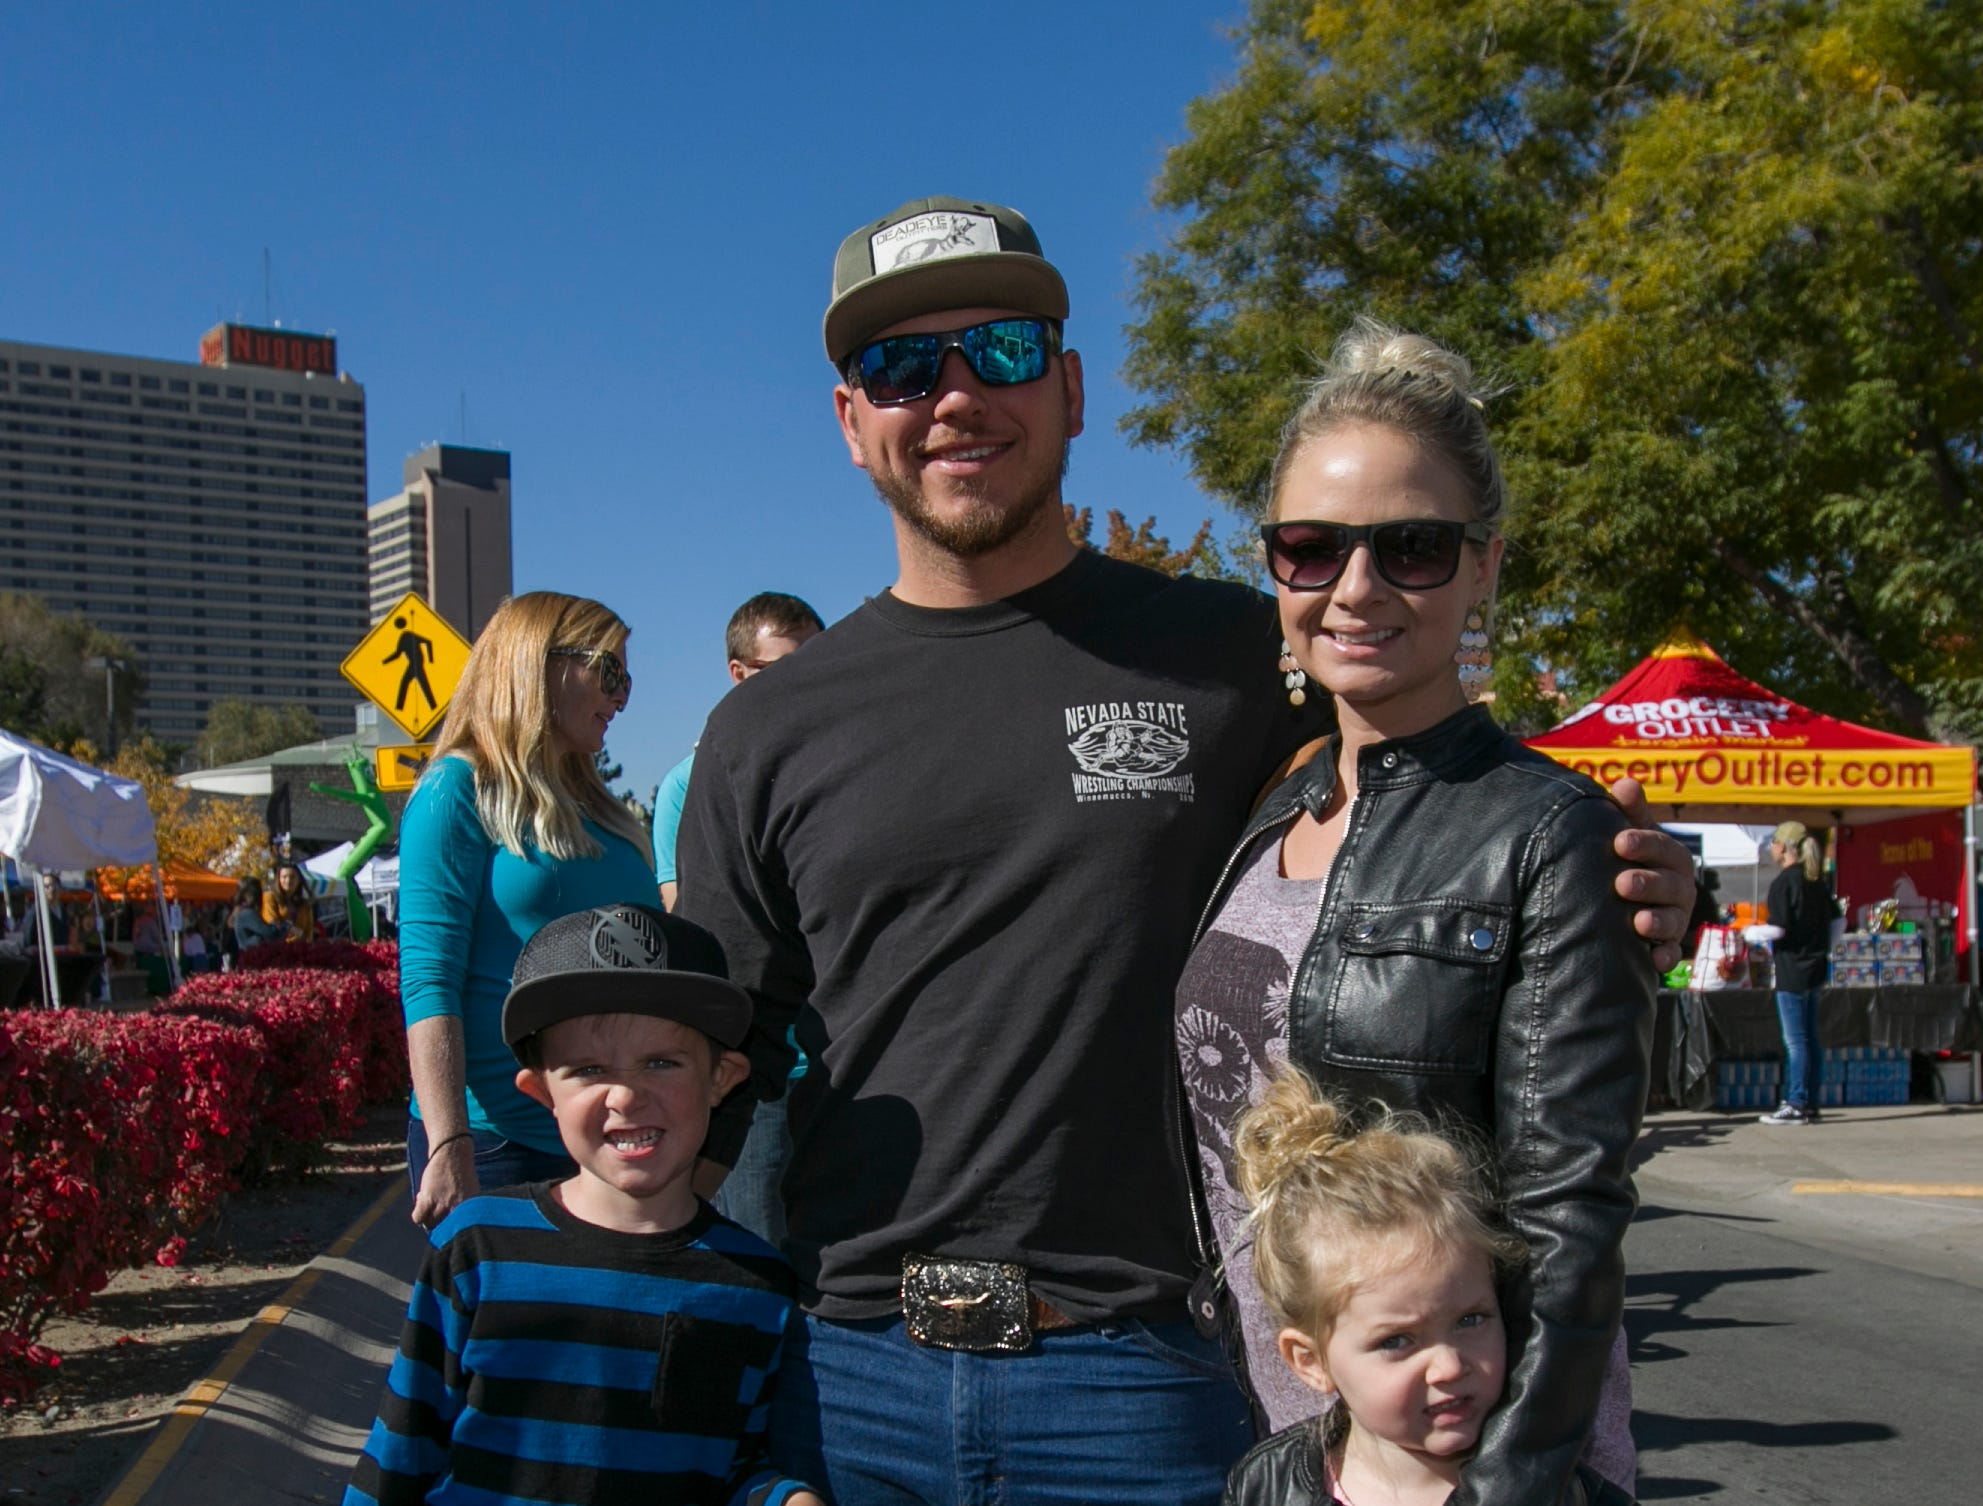 The Morby and Morton family during Pumpkin Palooza on Sunday Oct. 21, 2018 in Sparks, Nevada.